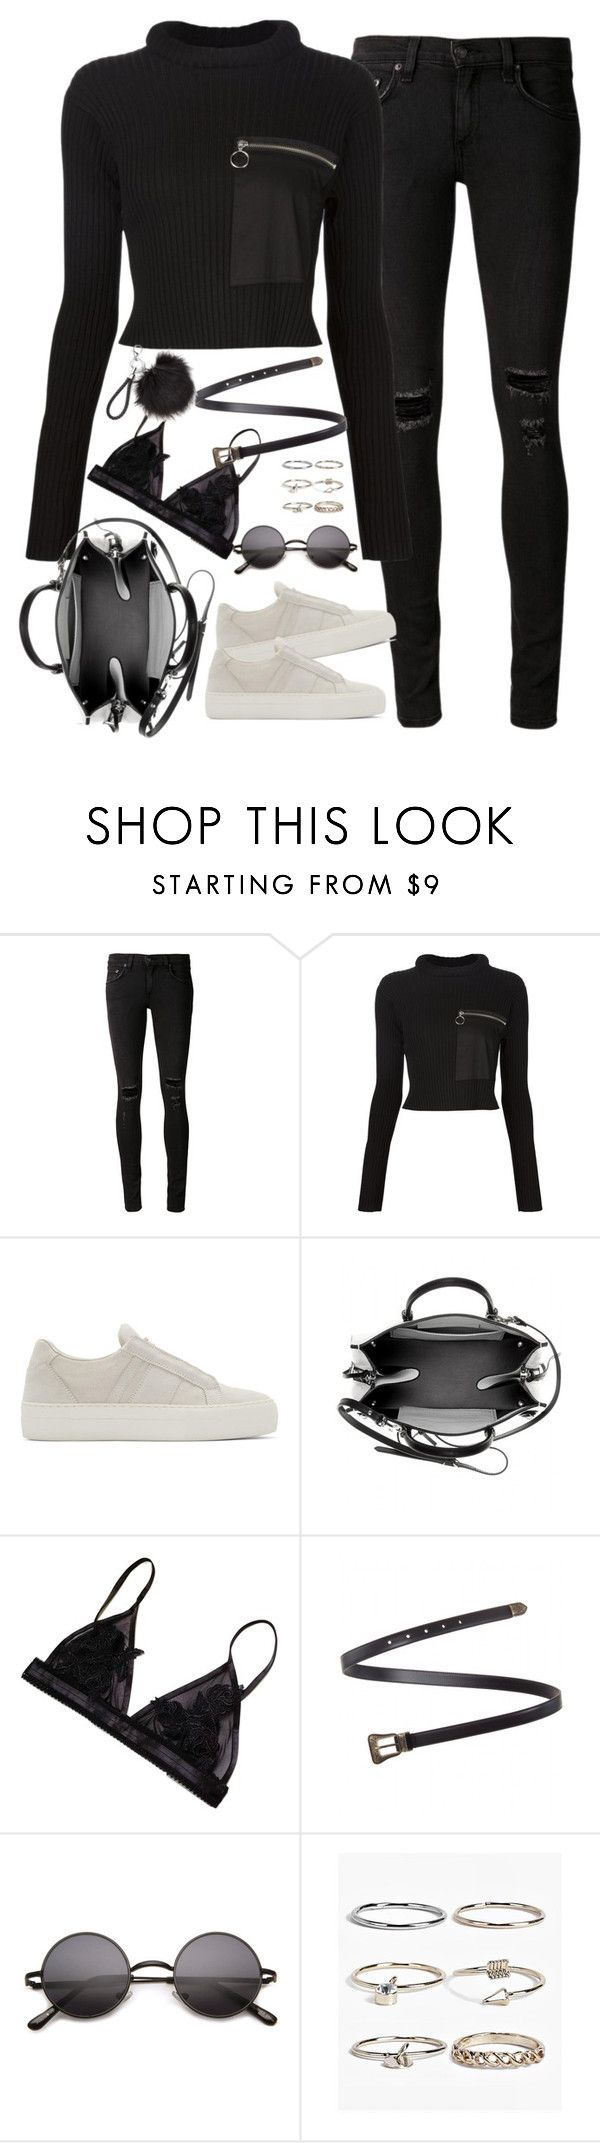 """Untitled#4516"" by fashionnfacts ❤ liked on Polyvore featuring rag & bone/JEAN, MM6 Maison Margiela, Helmut Lang, Balenciaga, Yves Saint Laurent and Boohoo"